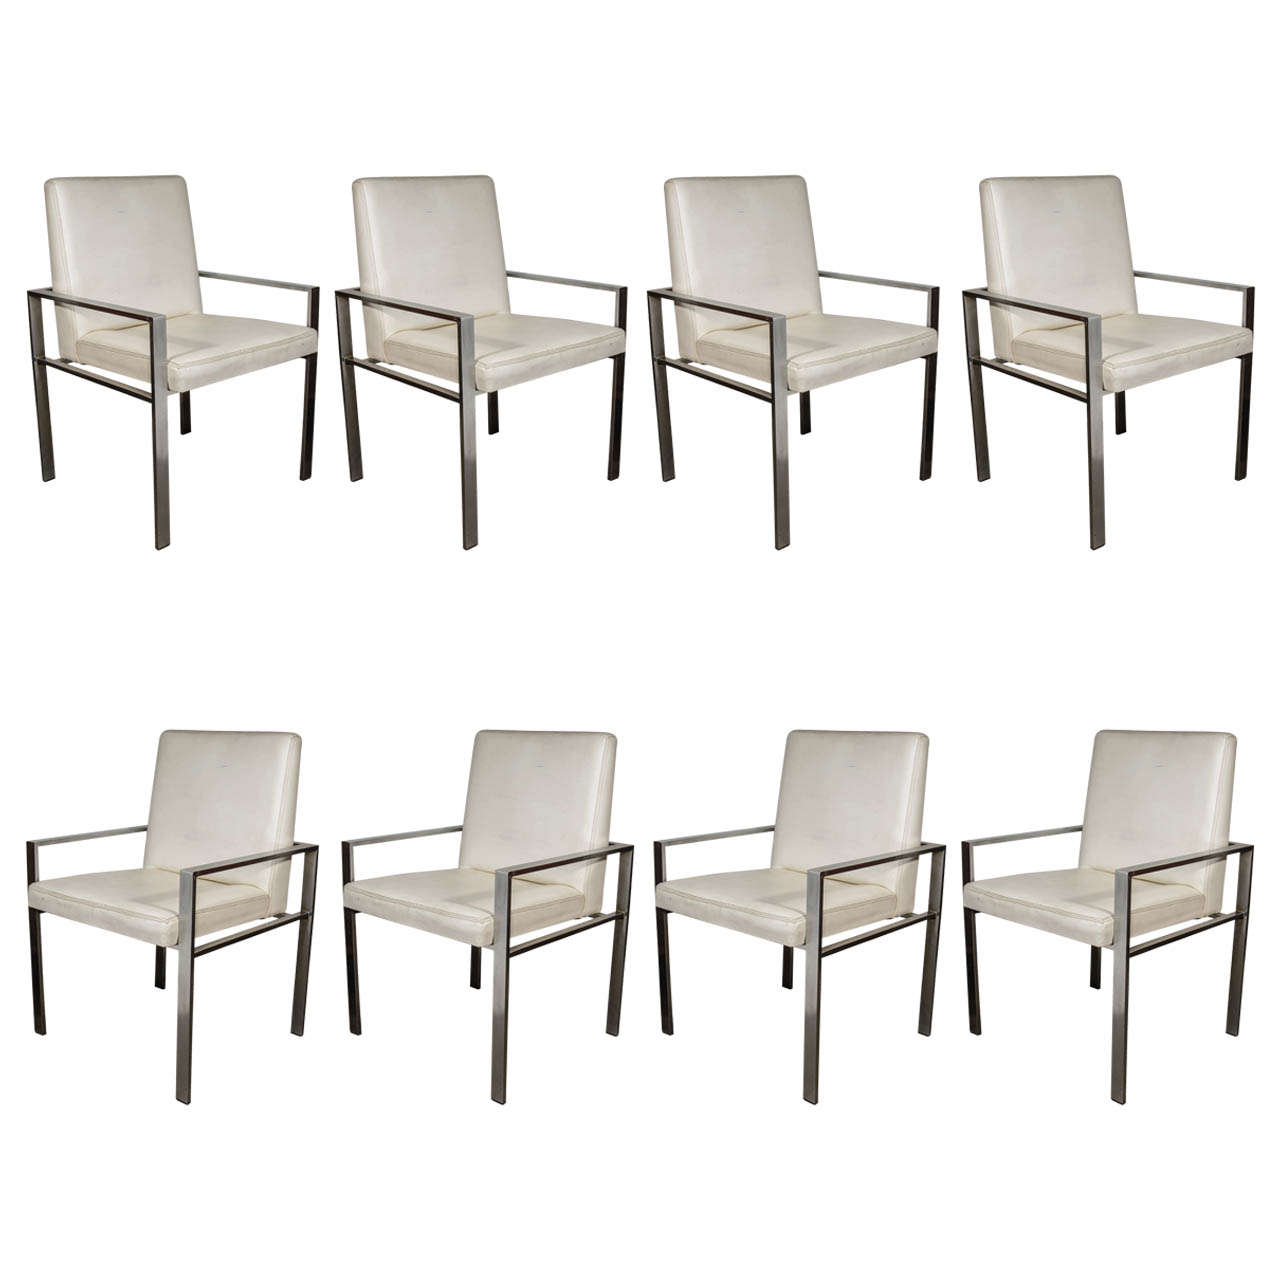 Set of Eight 1970s Aluminium Framed Dining Chairs